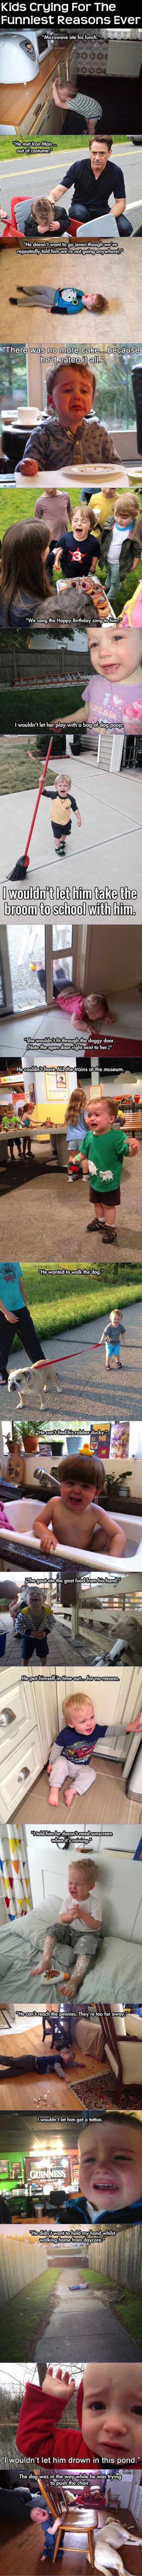 funny pics of kids crying for ridiculous reasons